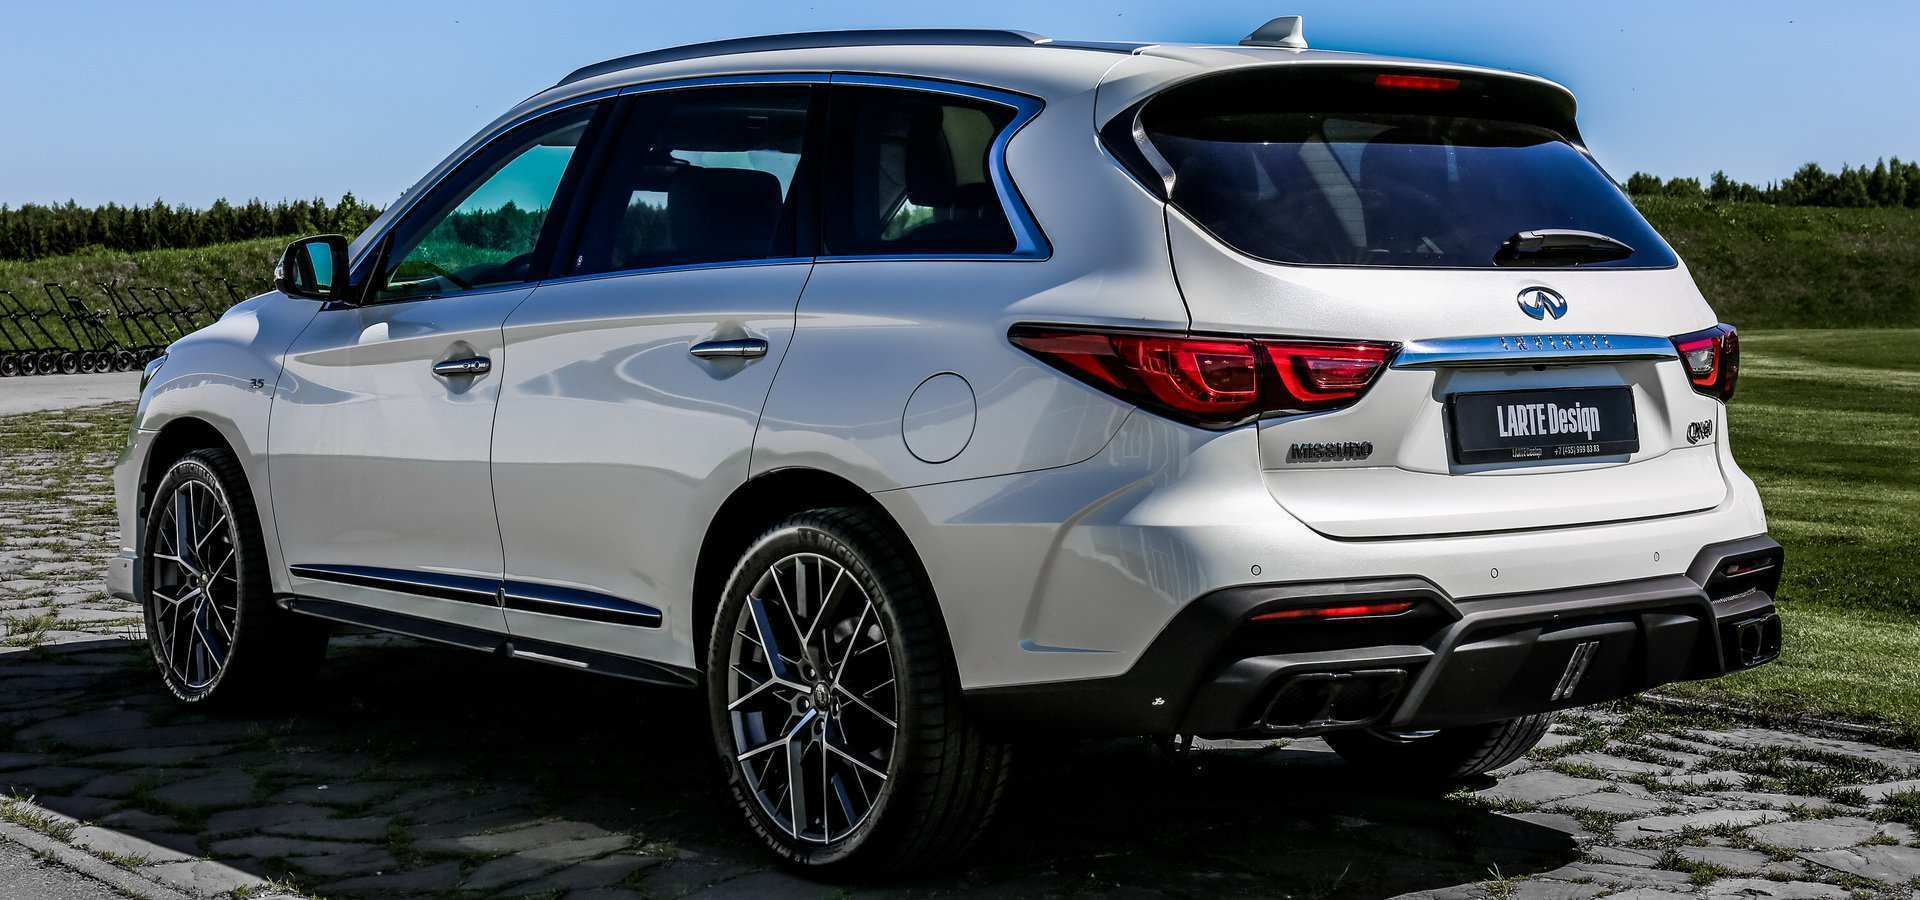 63 Best New Infiniti Qx60 2020 Spy Shoot